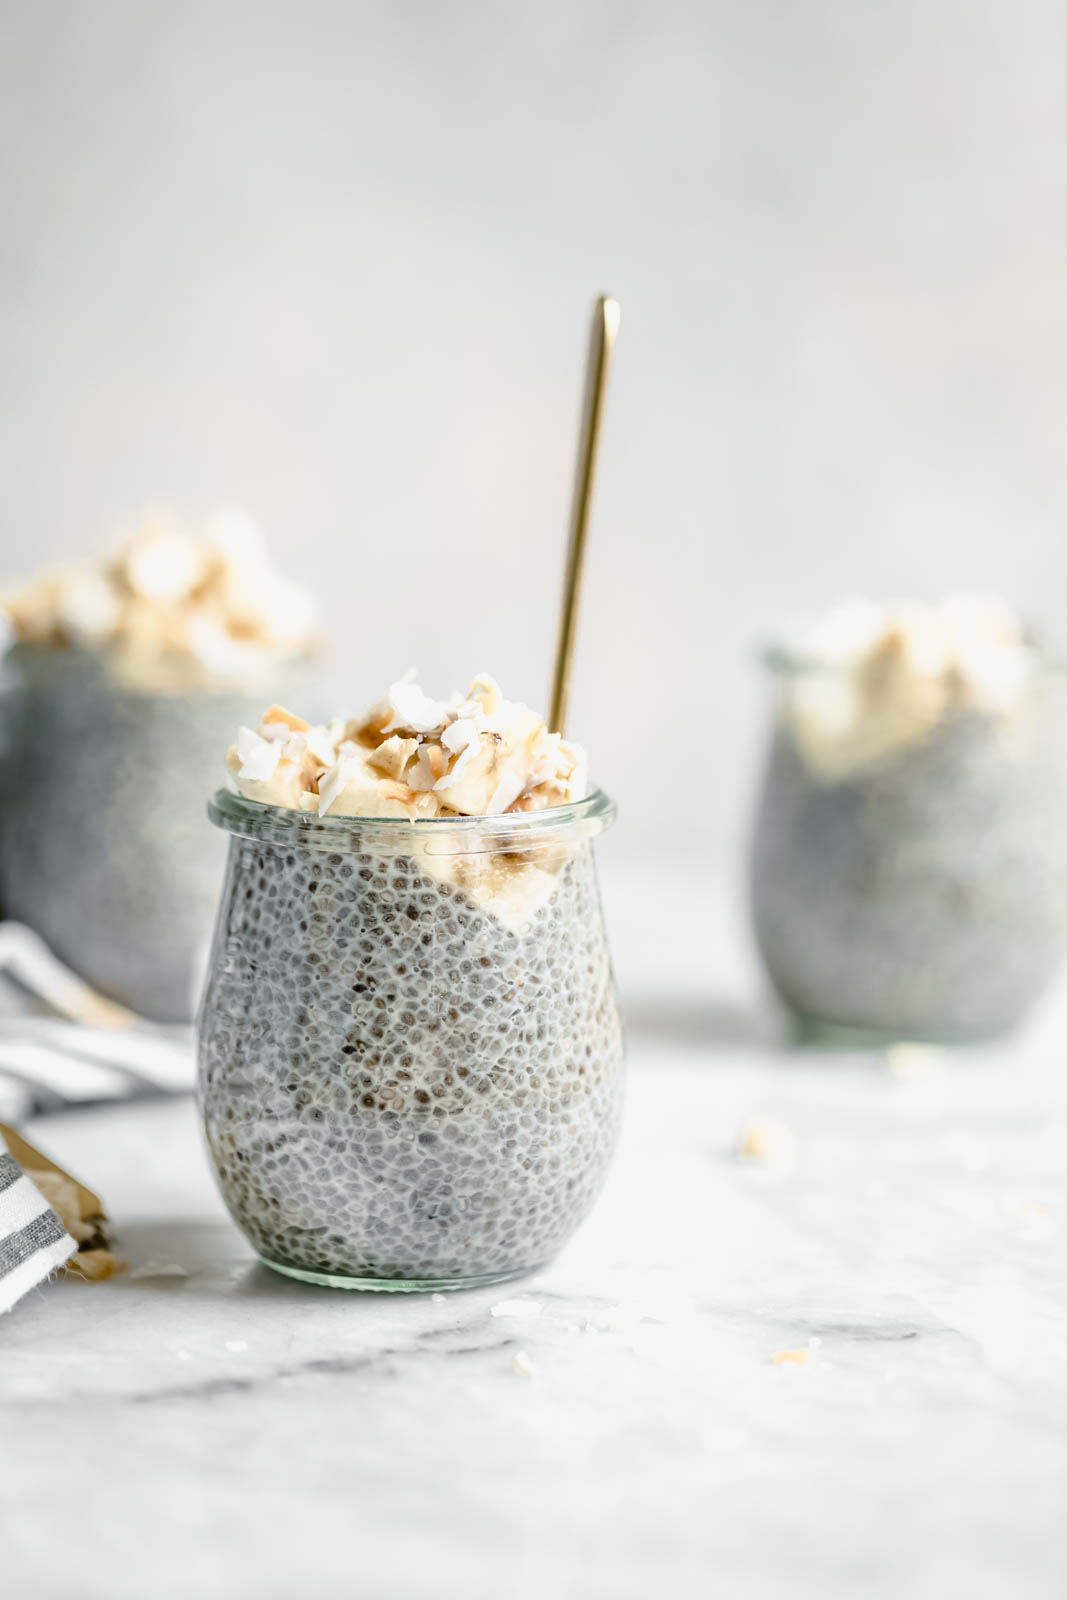 Perfect for weekday breakfast, this thick vegan Coconut Cream Pie Chia Pudding is made with almond milk and topped with banana, coconut flakes, and cashews